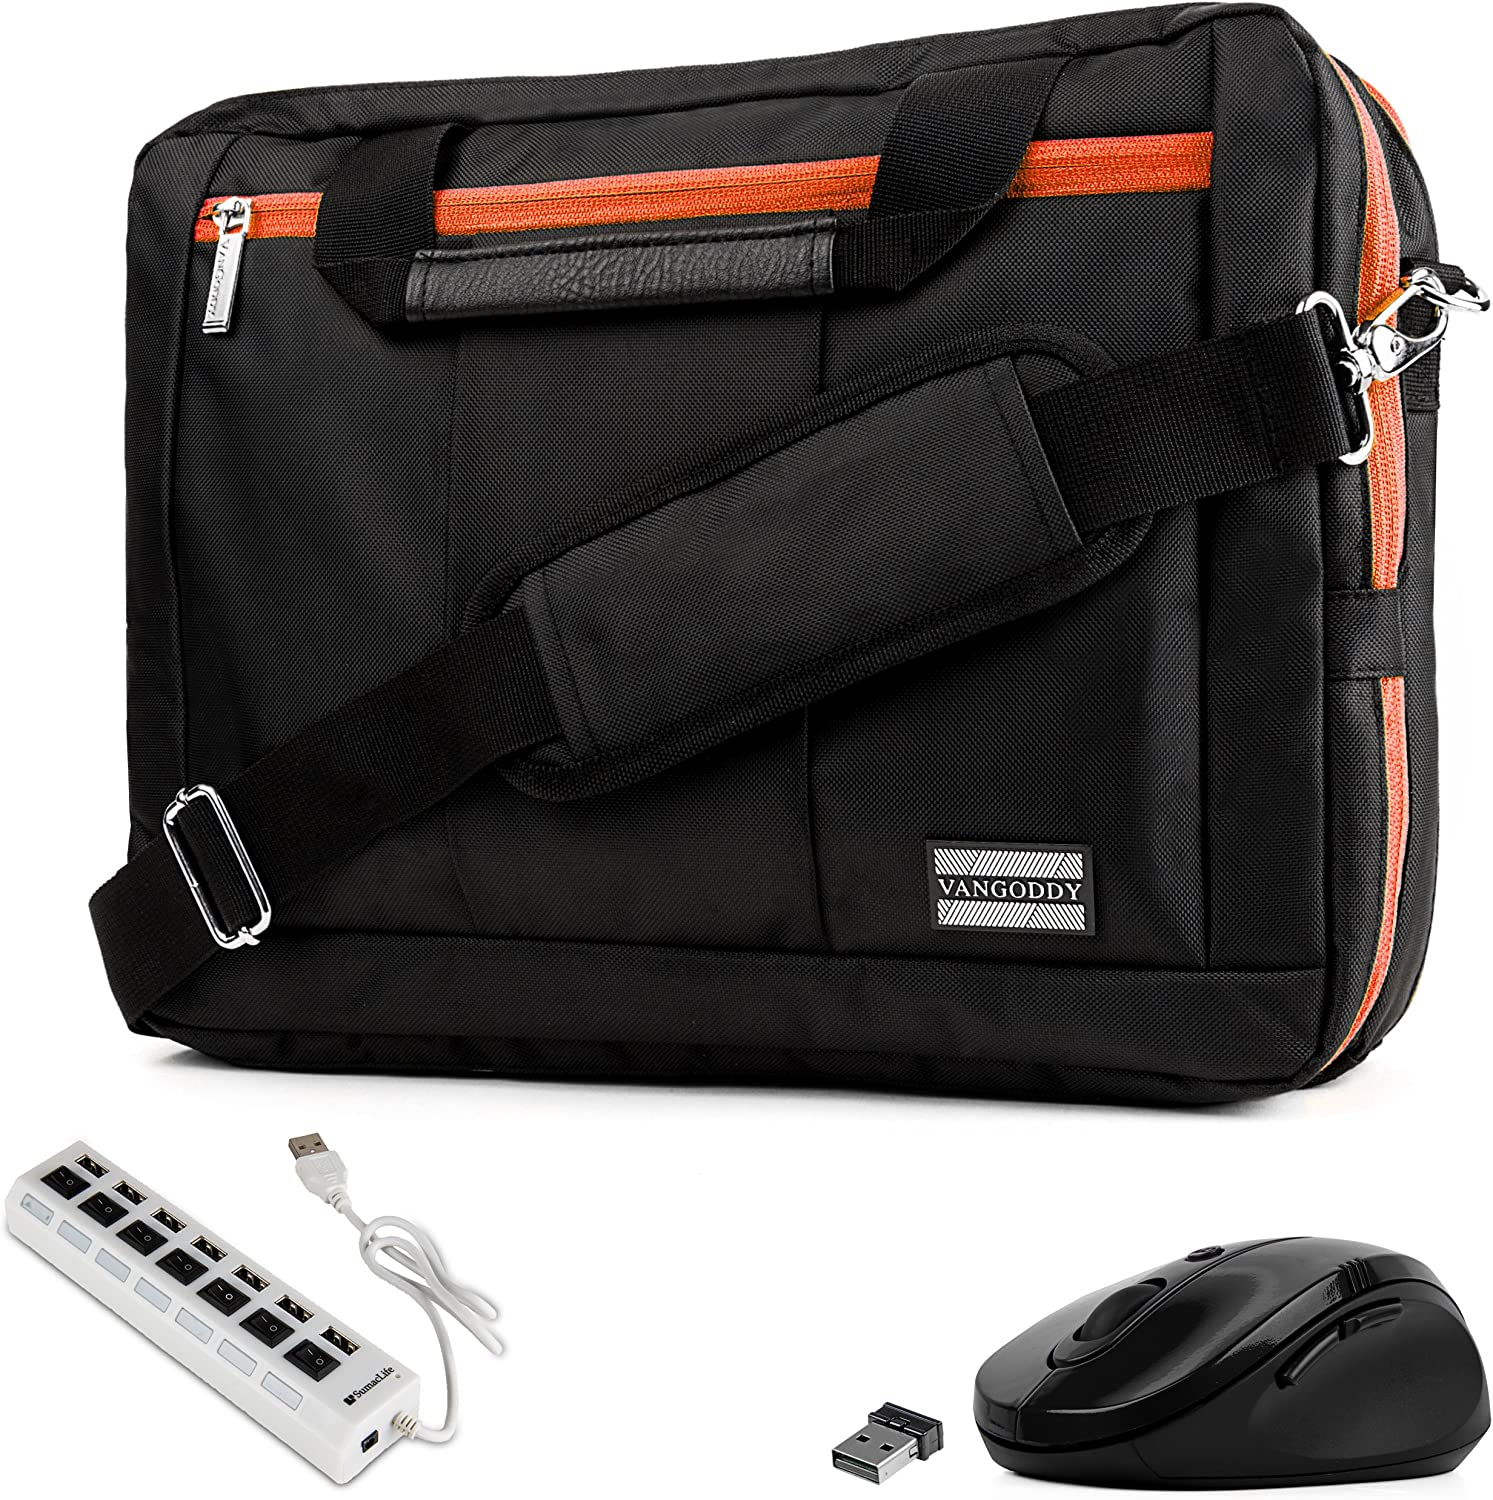 """Orange Trim Convertible Laptop Bag, USB Hub, Mouse for Dell Inspiron, Latitude, XPS, ChromeBook 11"""" to 13.3 inch"""